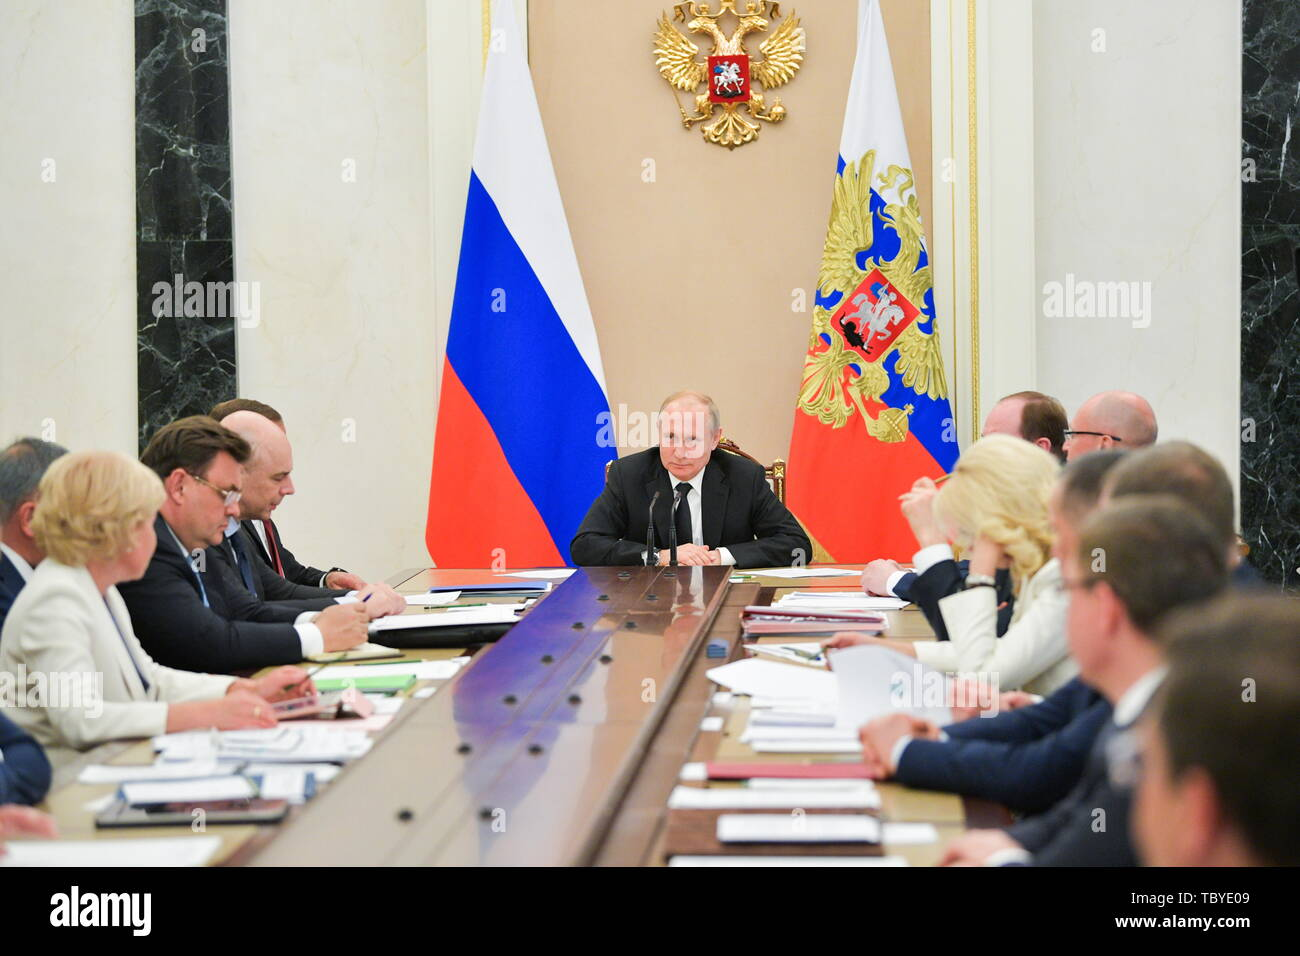 Moscow, Russia. 04th June, 2019. MOSCOW, RUSSIA - JUNE 4, 2019: Russia's President Vladimir Putin (C) chairs a Russian government meeting at the Moscow Kremlin. Alexei Druzhinin/Russian Presidential Press and Information Office/TASS Credit: ITAR-TASS News Agency/Alamy Live News - Stock Image